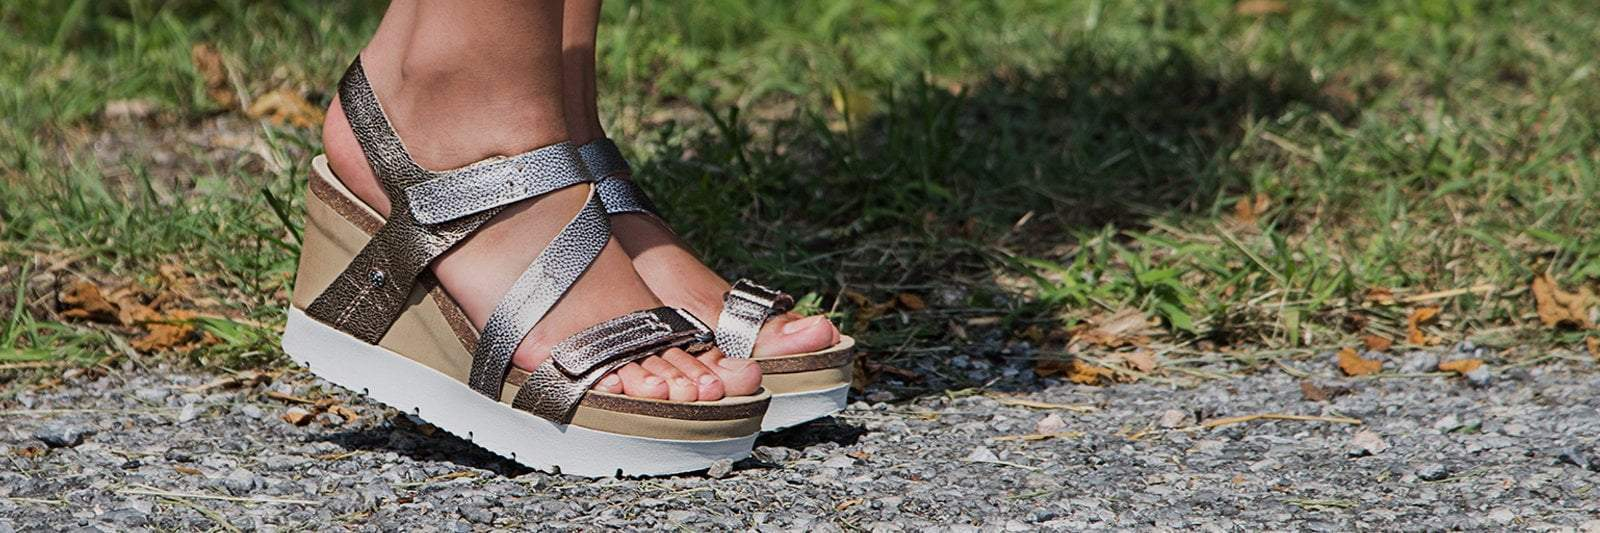 OTBT's Summer Wedges Sale!